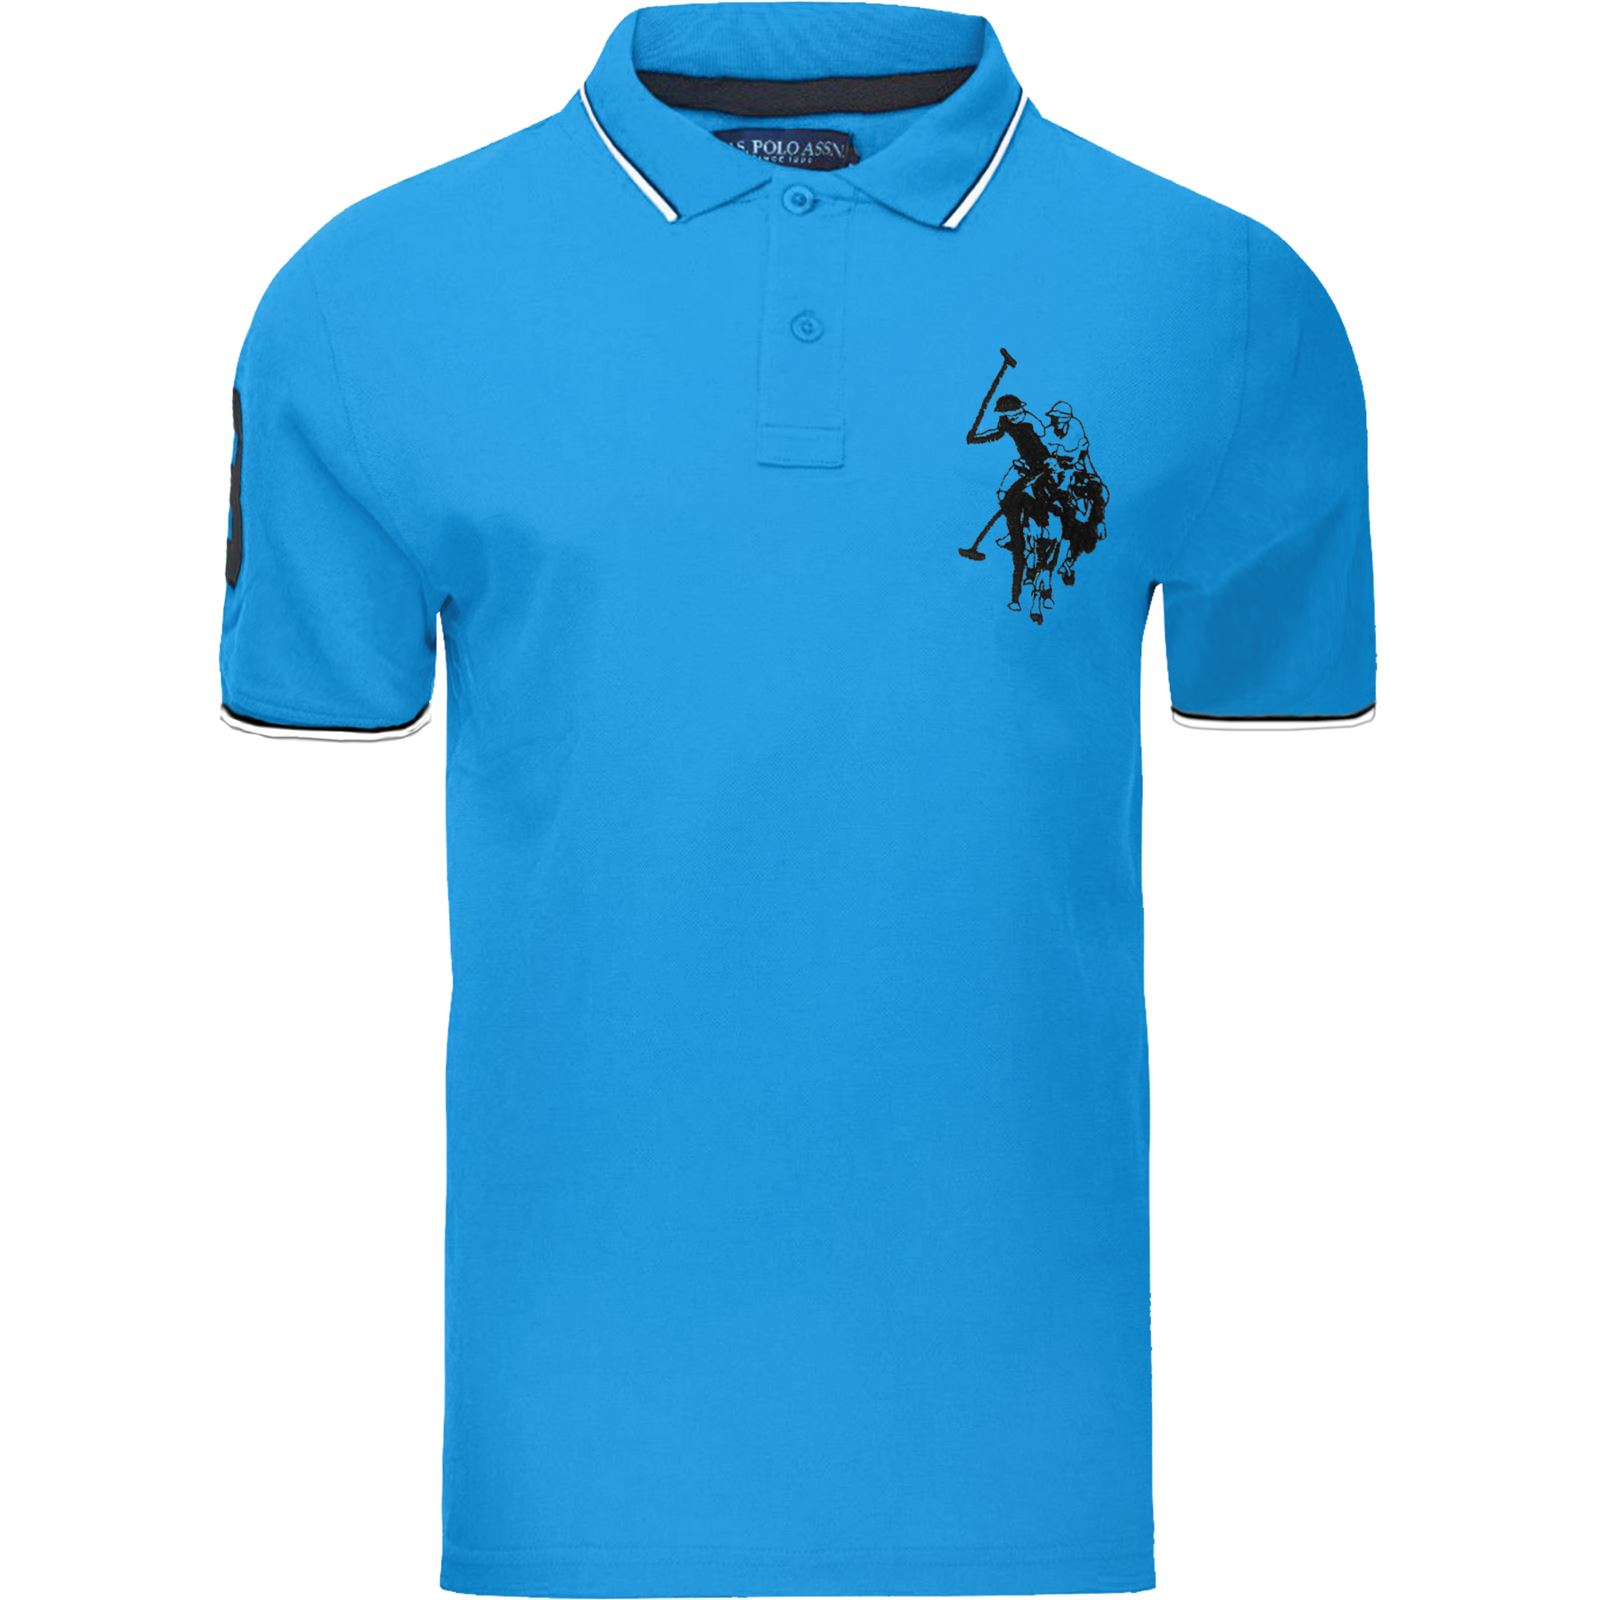 US-Polo-Assn-Para-Hombre-Manga-Corta-Big-Pony-contraste-Lauren-Polo-Camiseta-Top-Lote